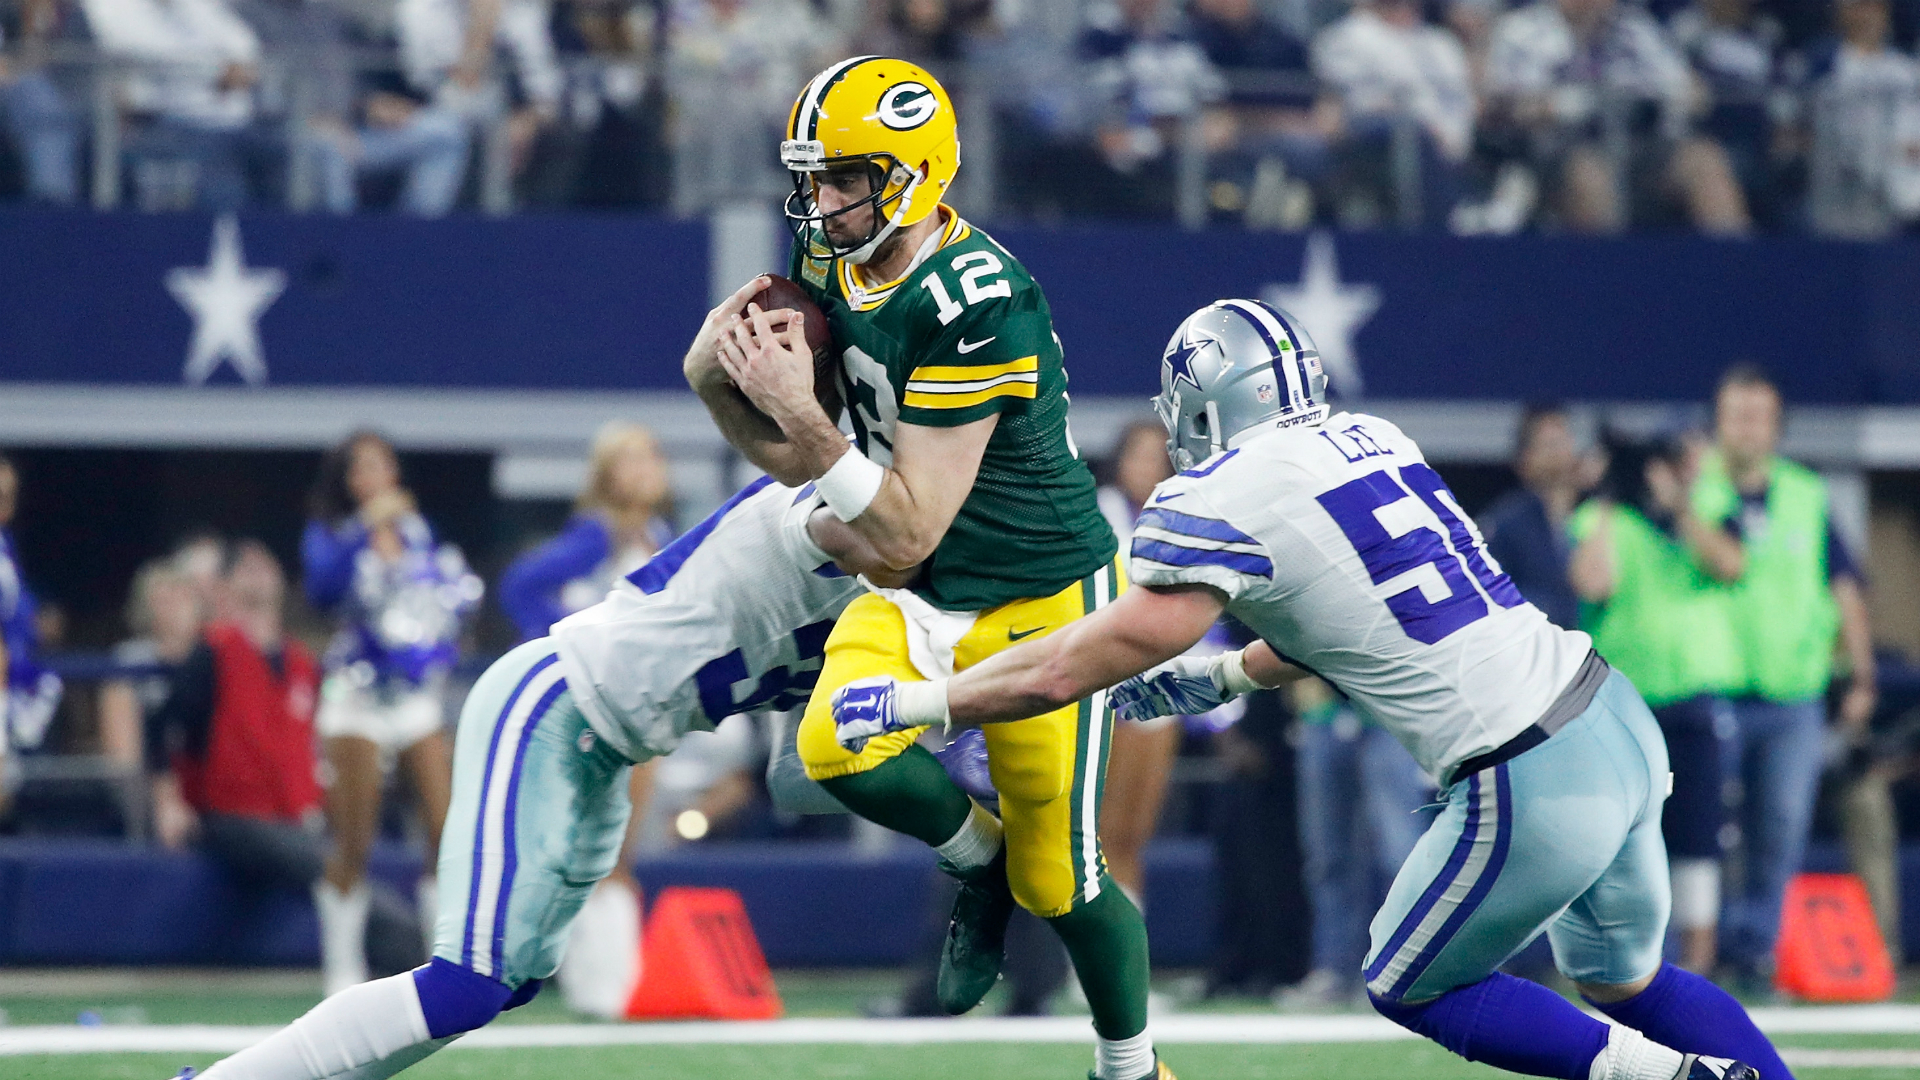 NFL Playoffs: Packers-Cowboys thriller sets TV ratings record for divisional round